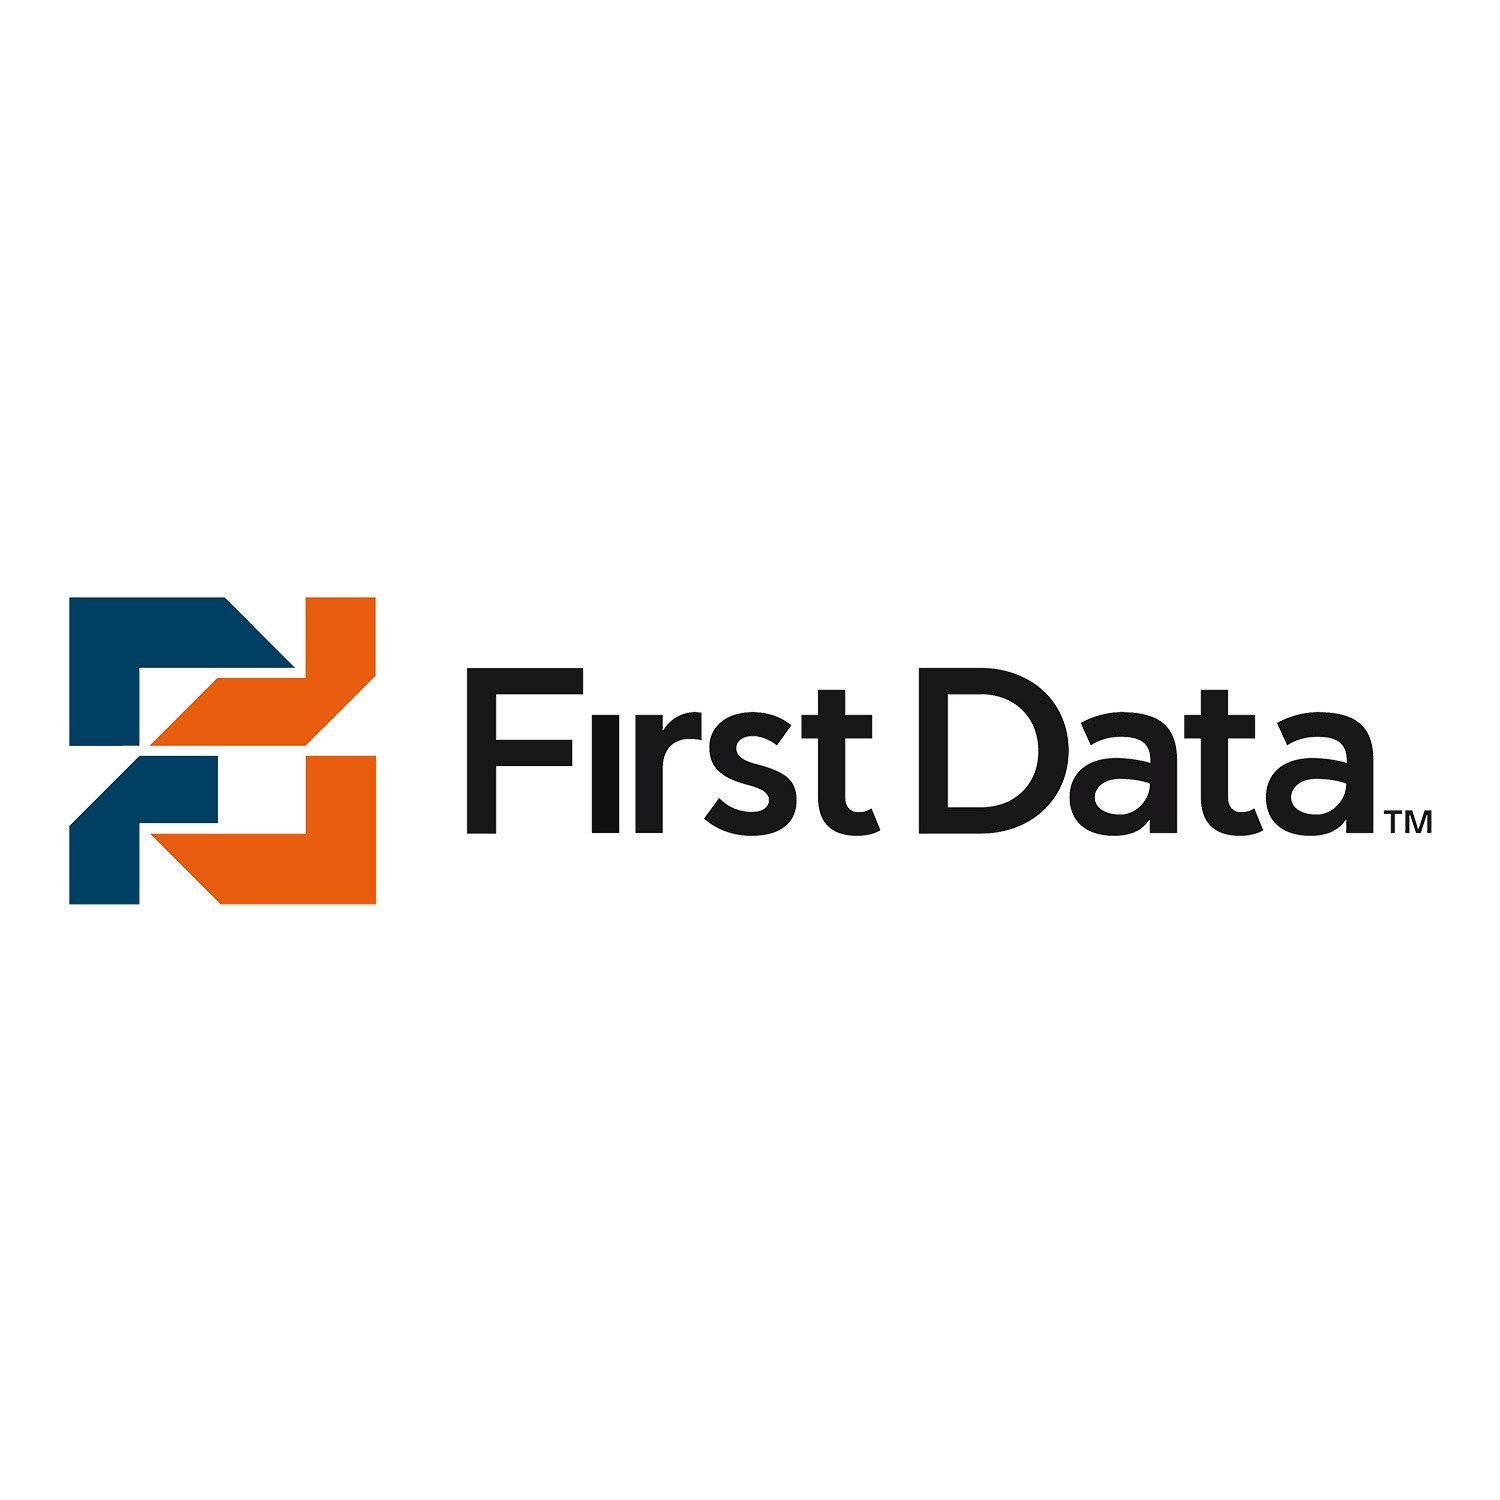 firstData.jpg